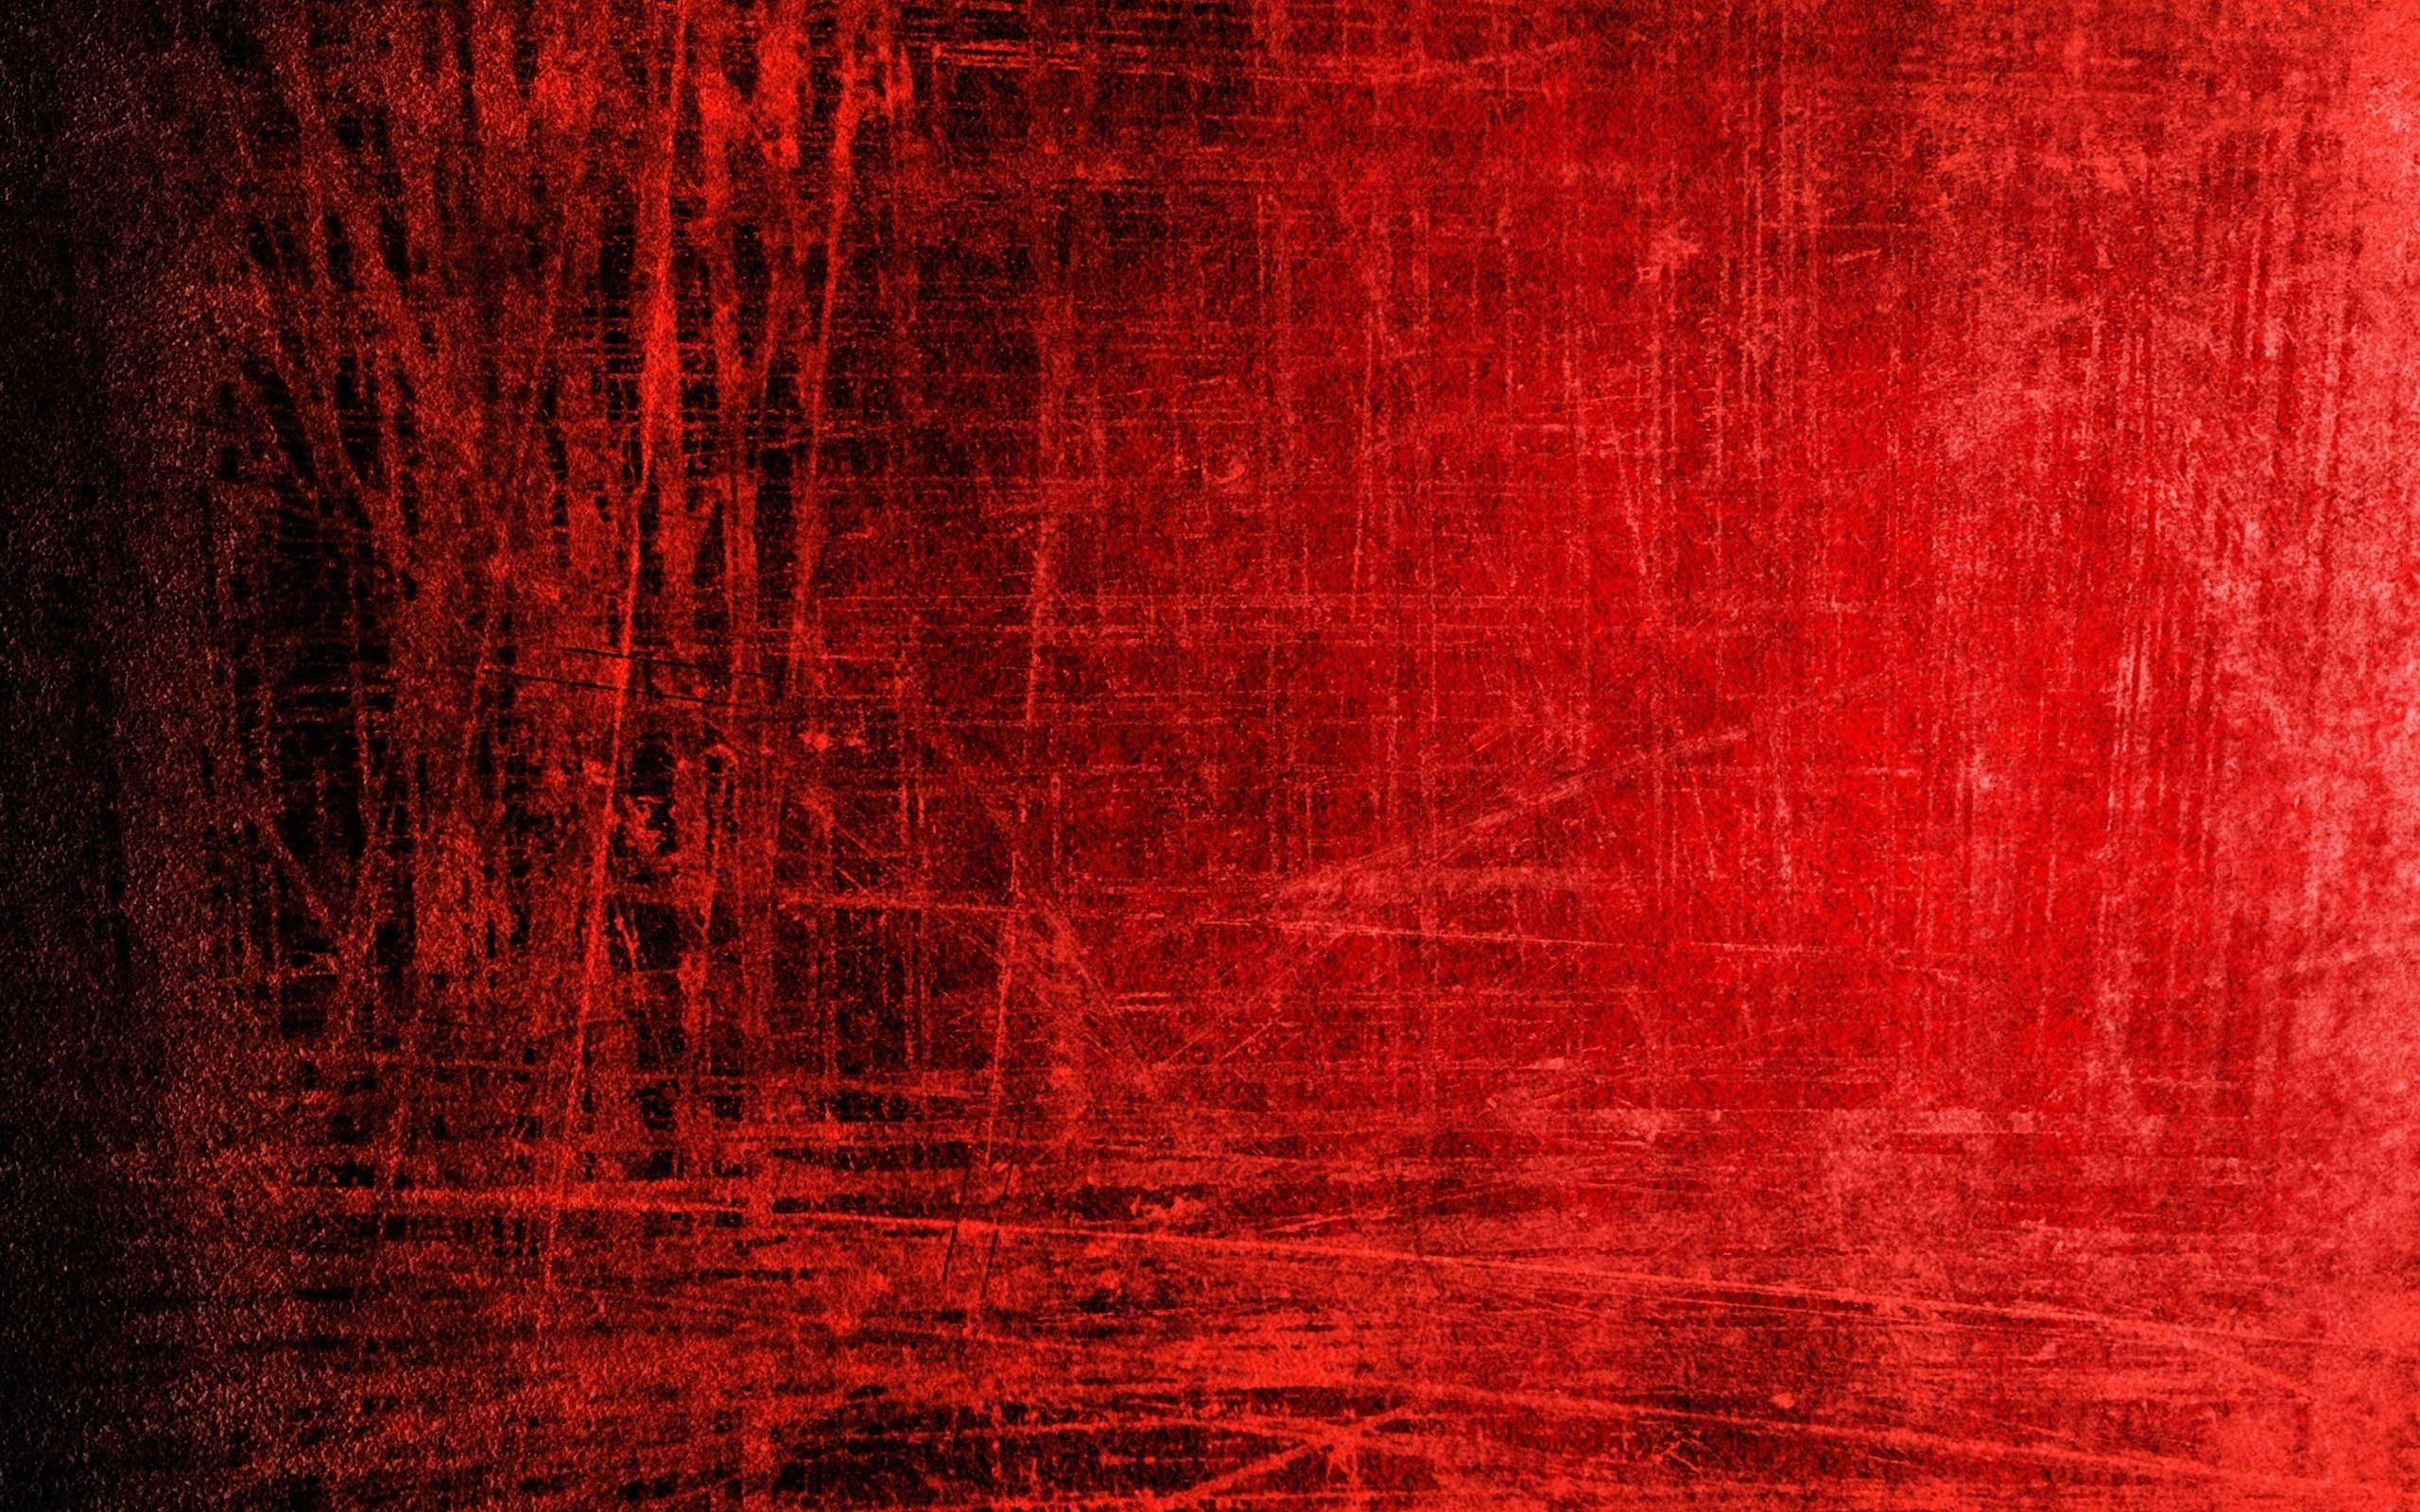 Red Wallpaper Hd Cool Wallpaper Basic Background